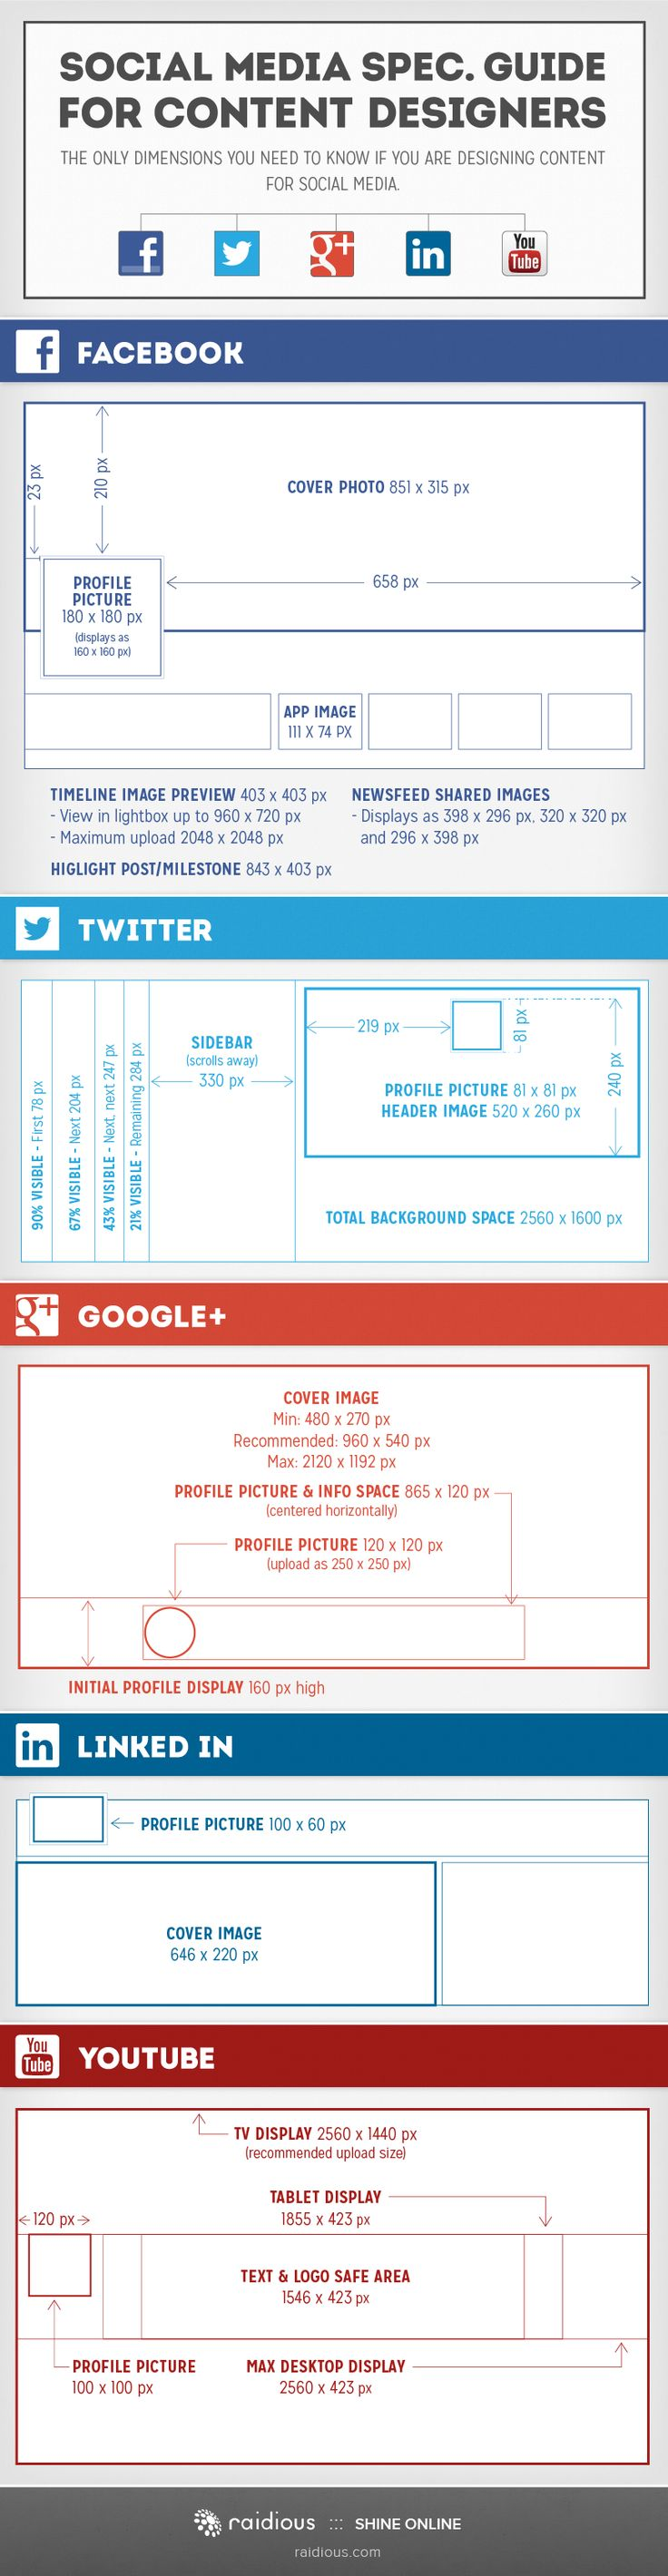 Visual content marketing resource - a template for image sizes for your social network profiles as at August 2013 #visualcontentmarketing